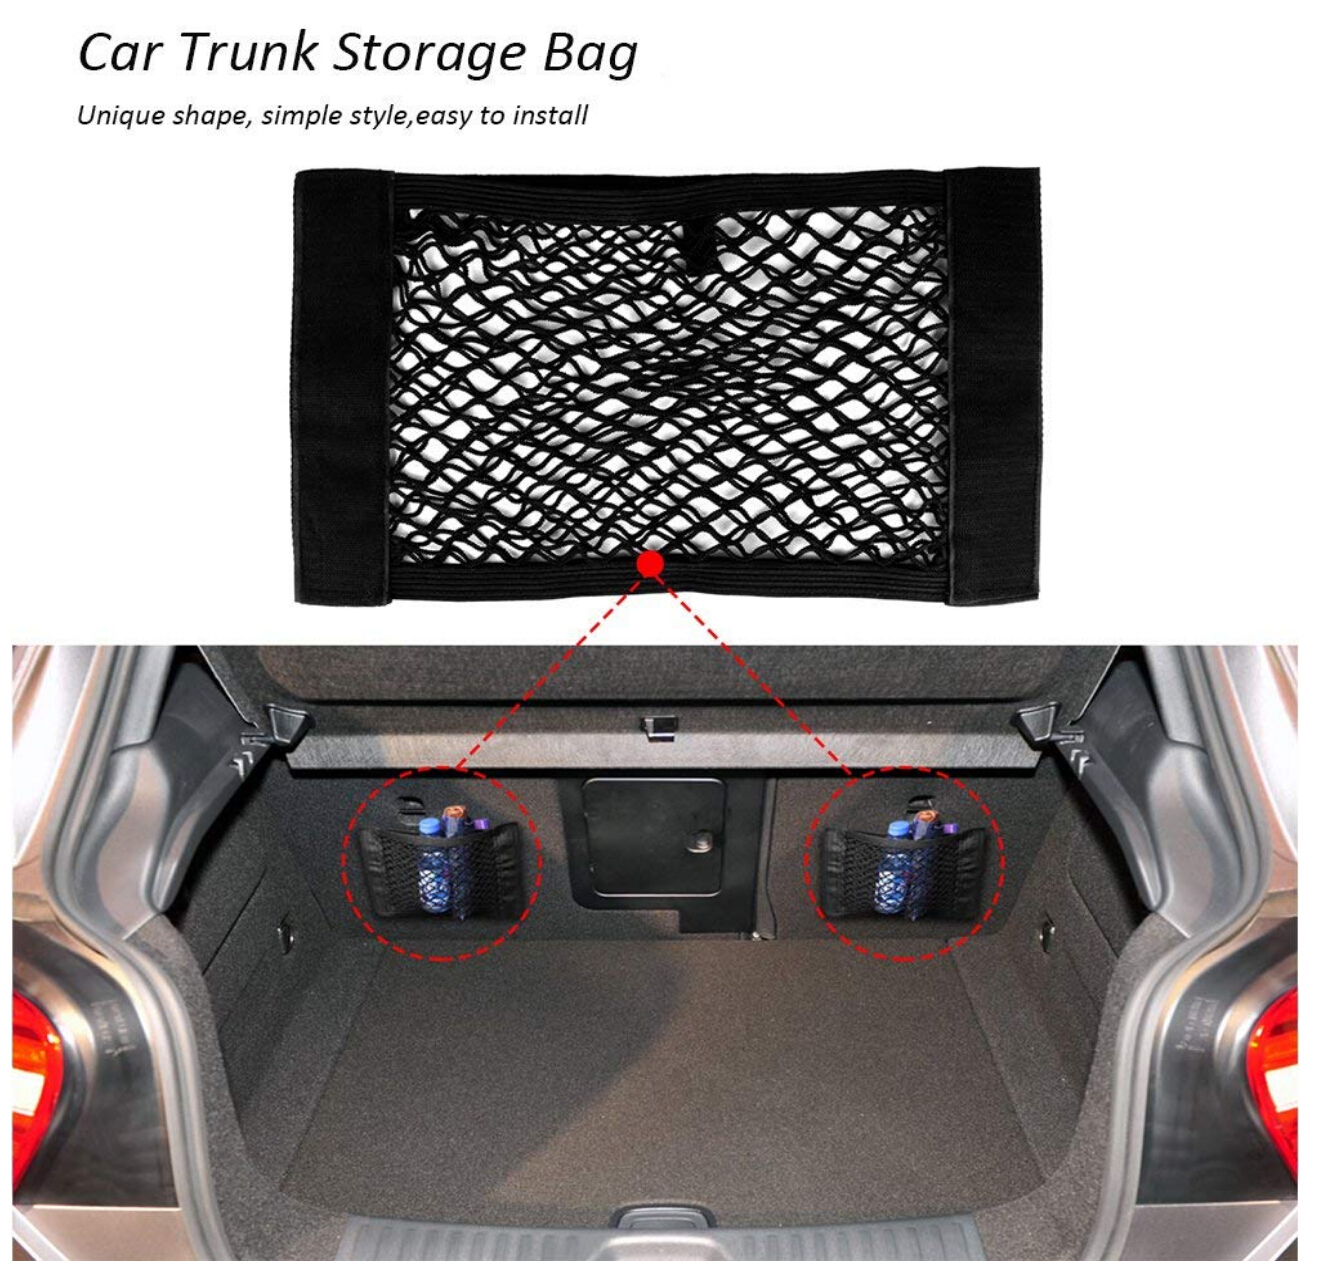 Car Trunk luggage Net For Mercedes Benz W203 W210 W211 AMG W204 W220 W205 B C E GLK ML GL Class A260 E300 C200 Car Accessories-in Car Stickers from Automobiles & Motorcycles